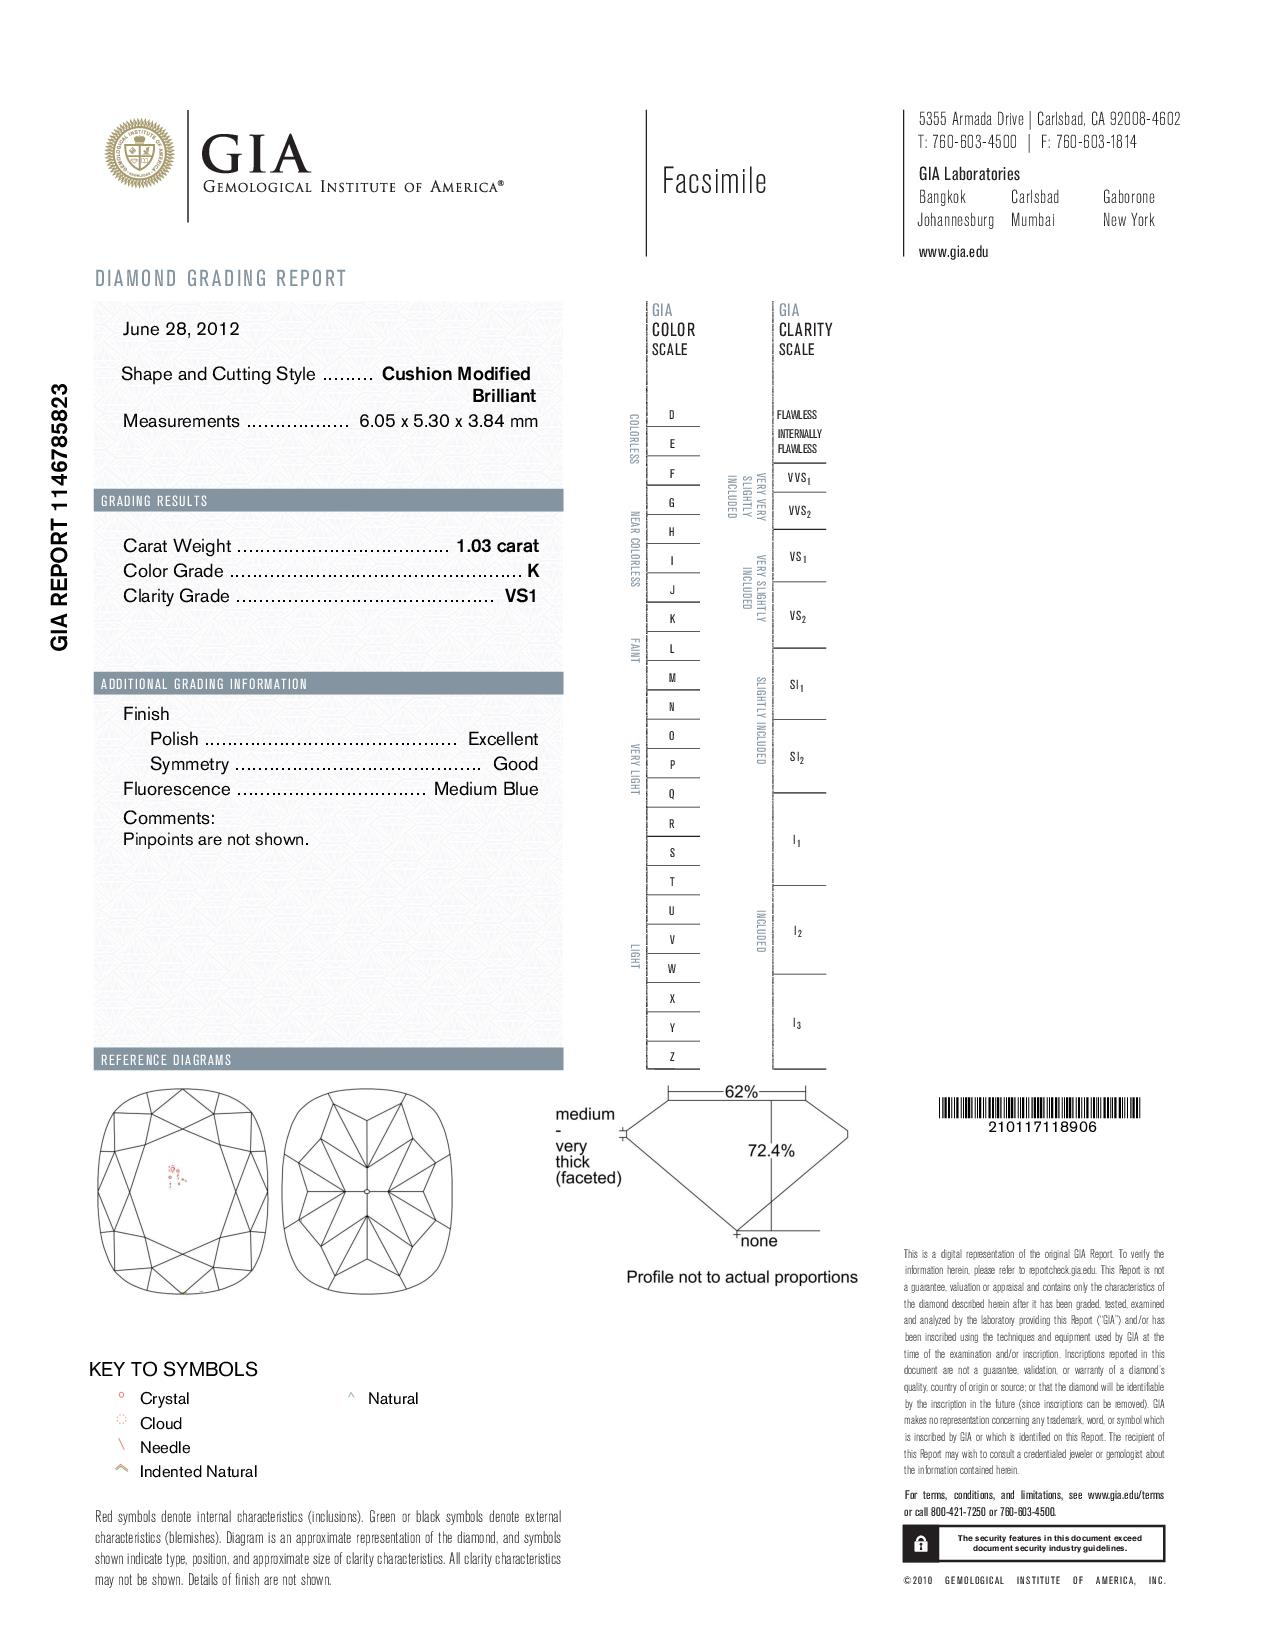 This is a 1.03 carat cushion shape, K color, VS1 clarity natural diamond accompanied by a GIA grading report.